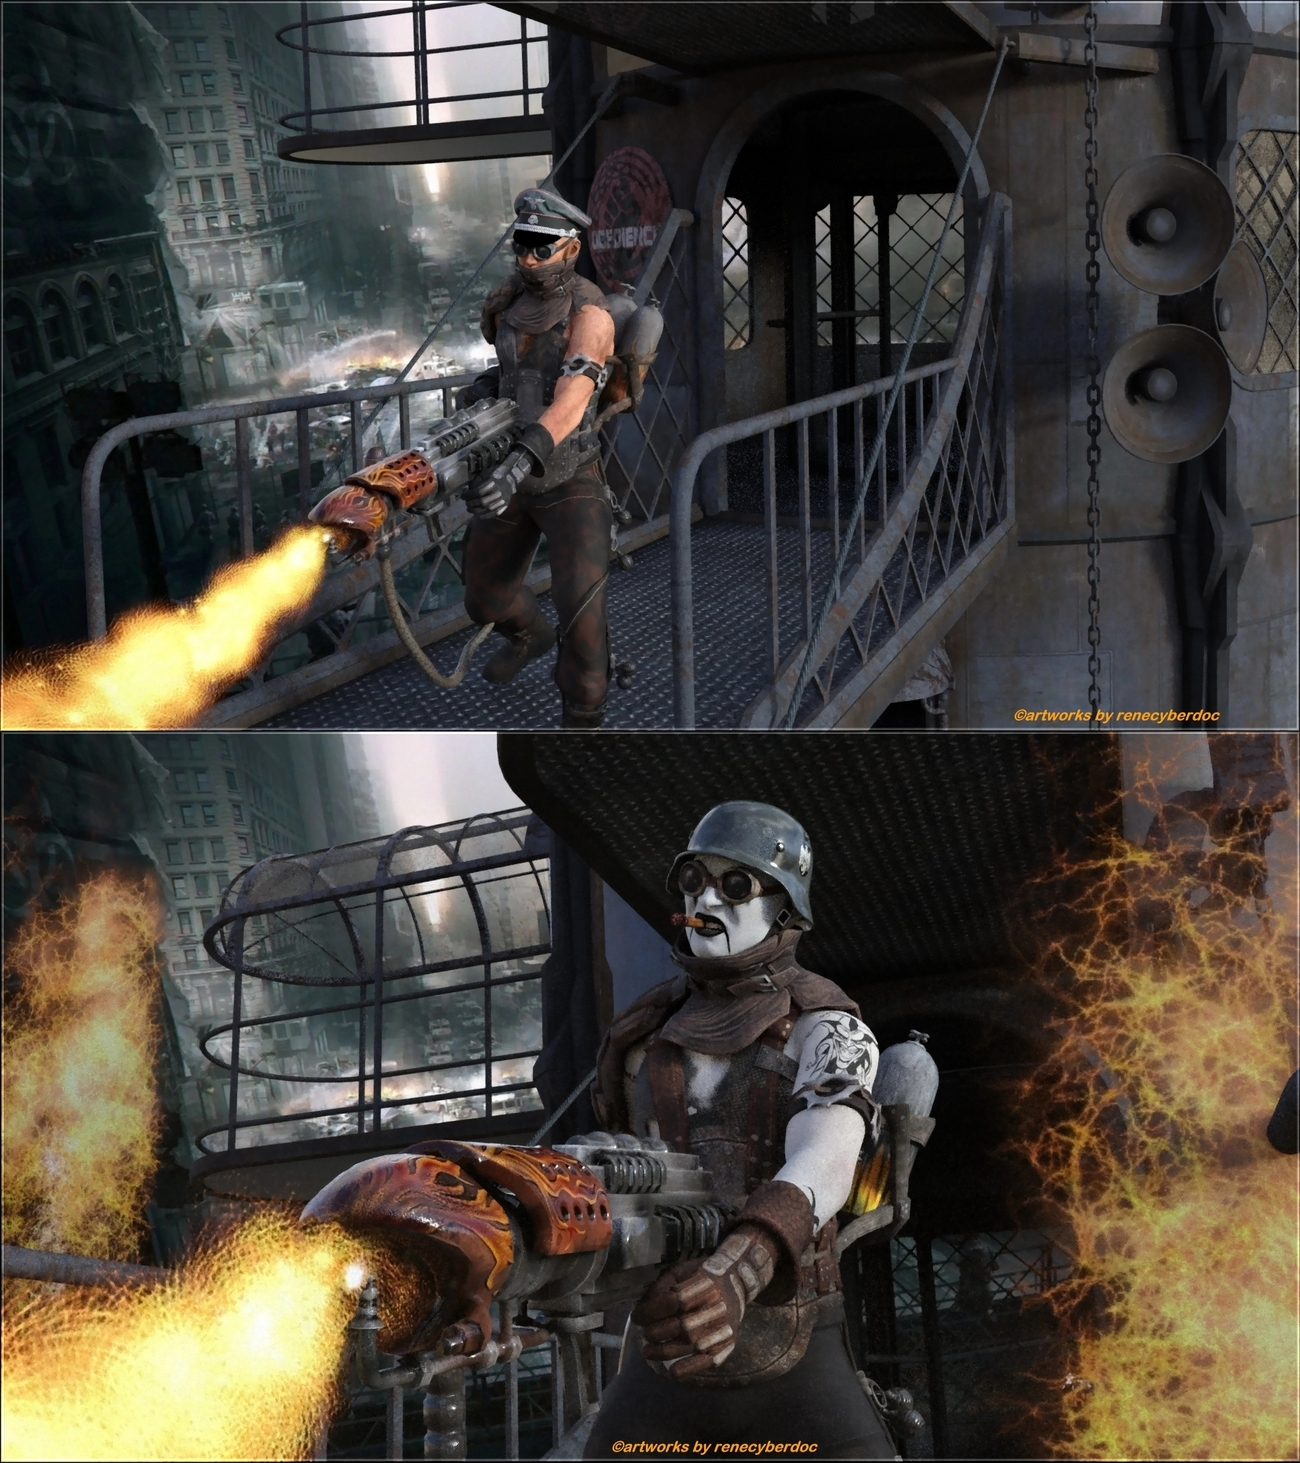 The Division - Fire Cleaners by renecyberdoc